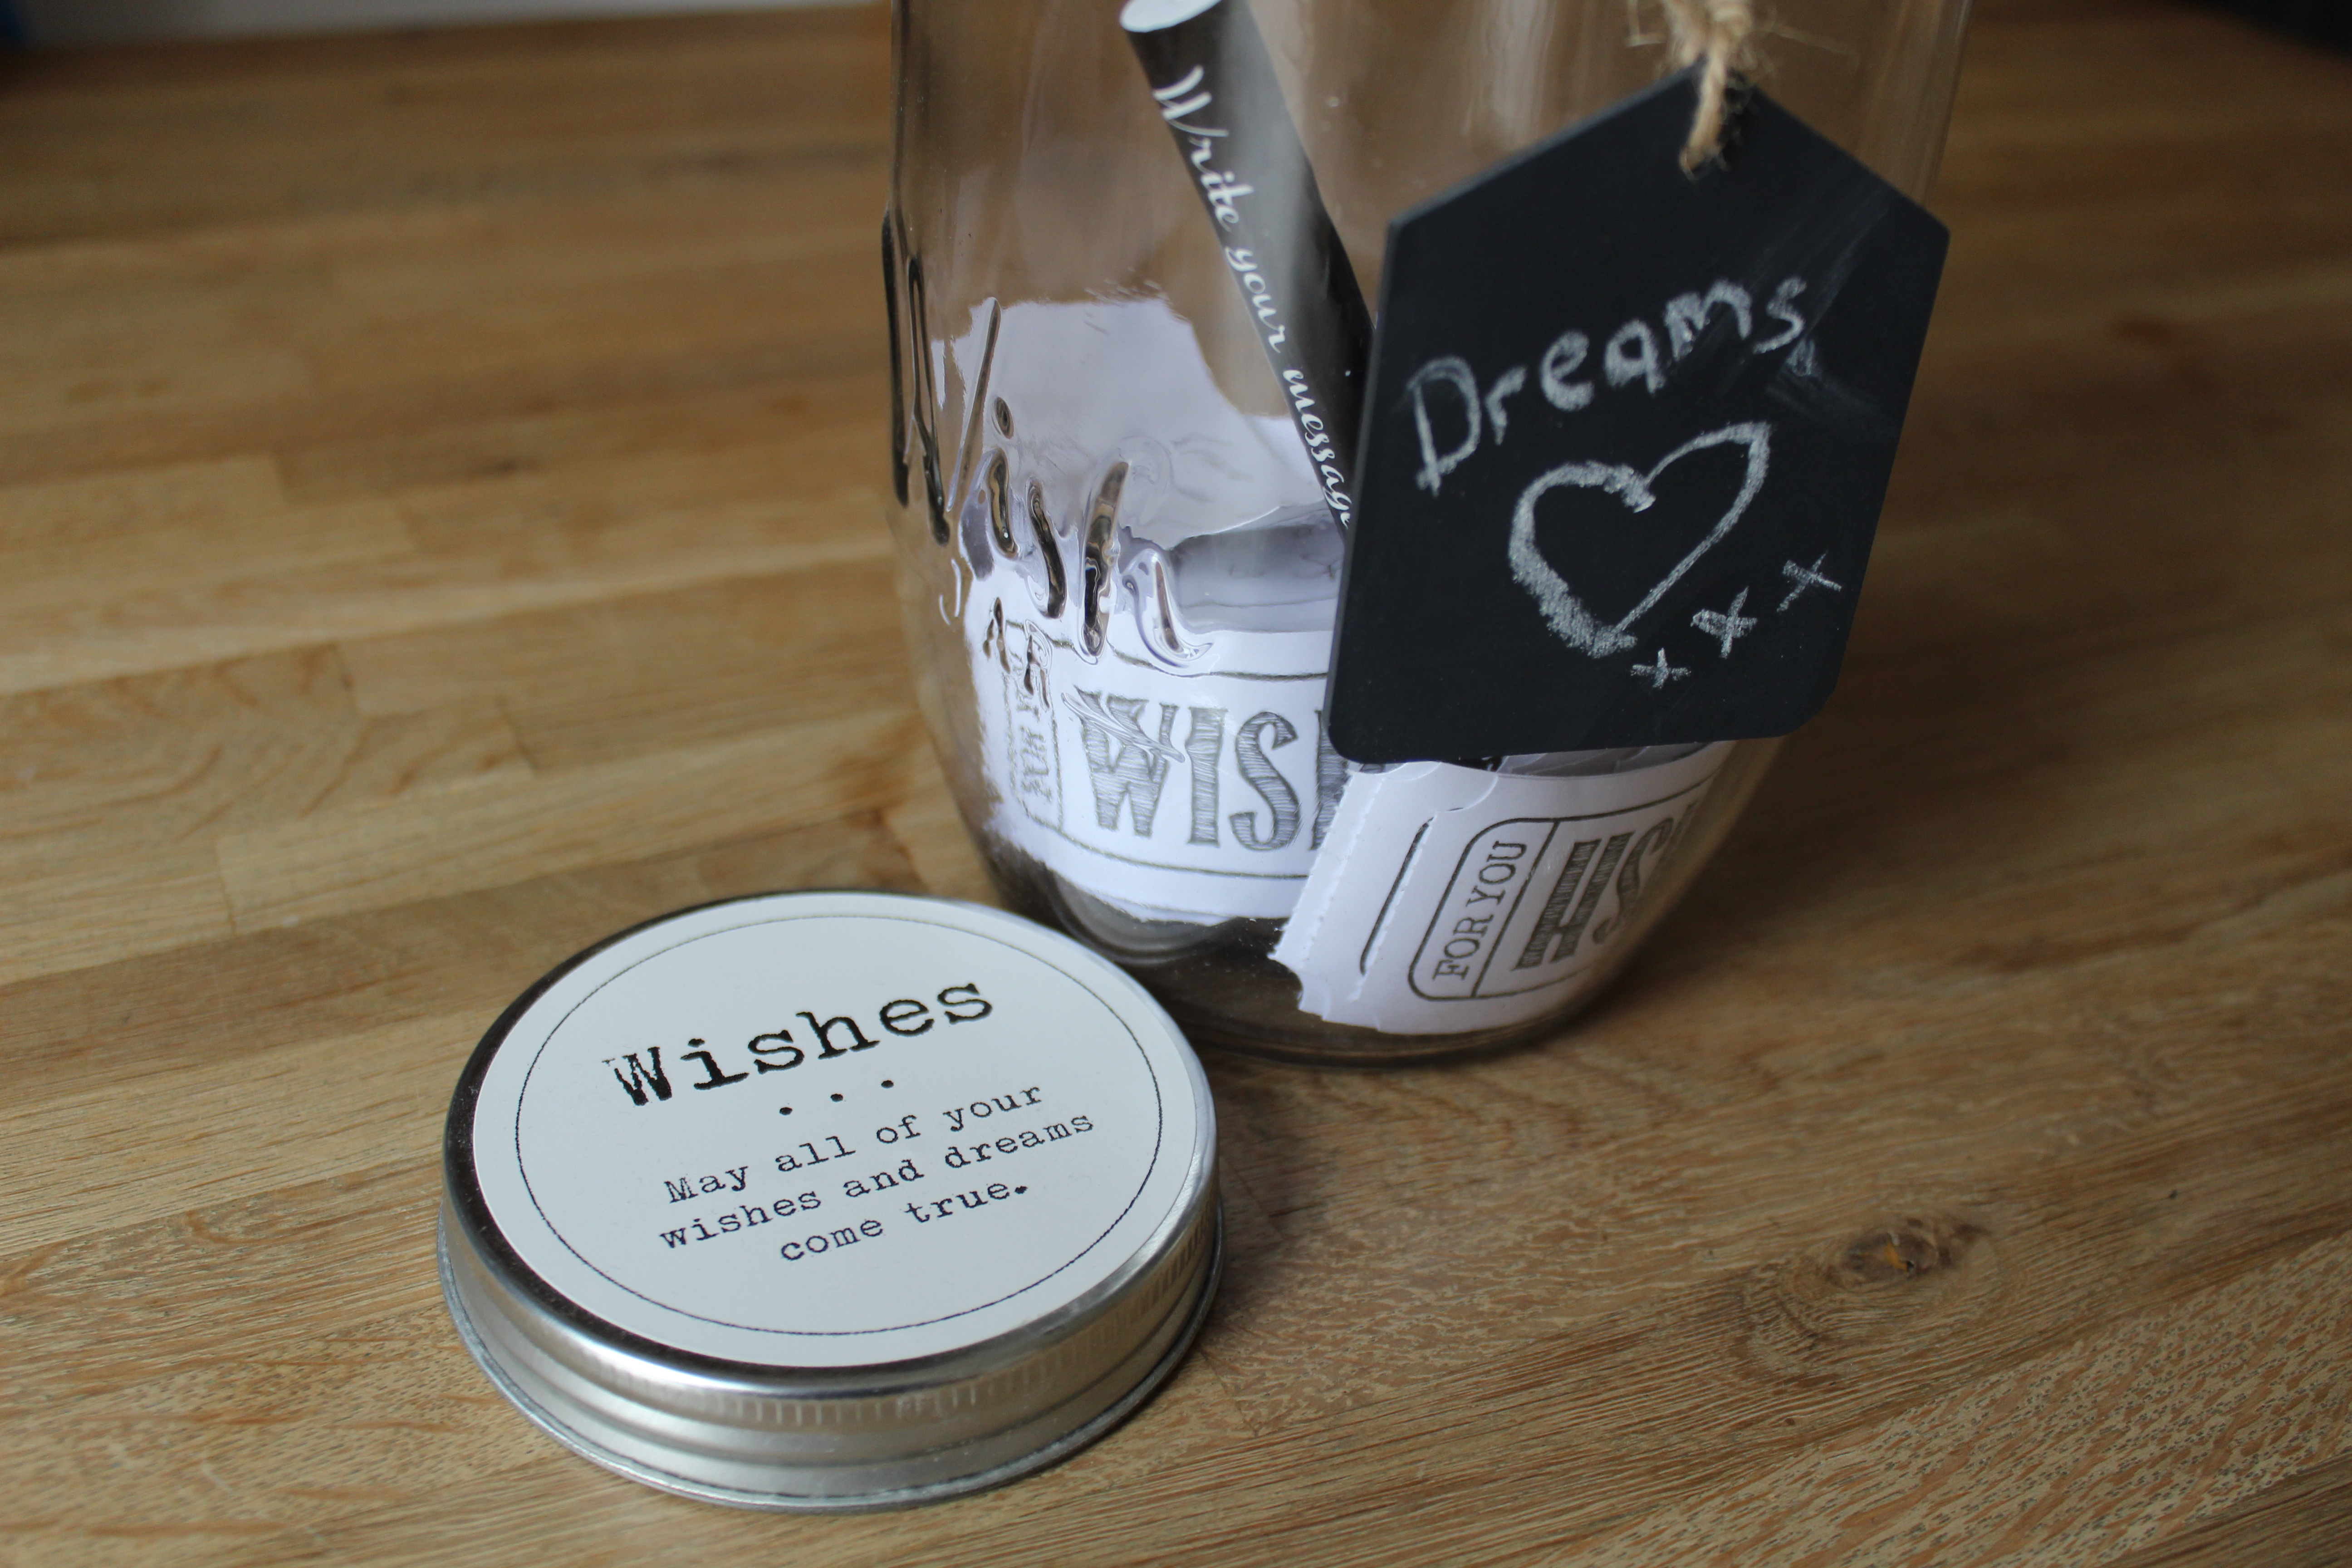 Our jar of dreams and wishes